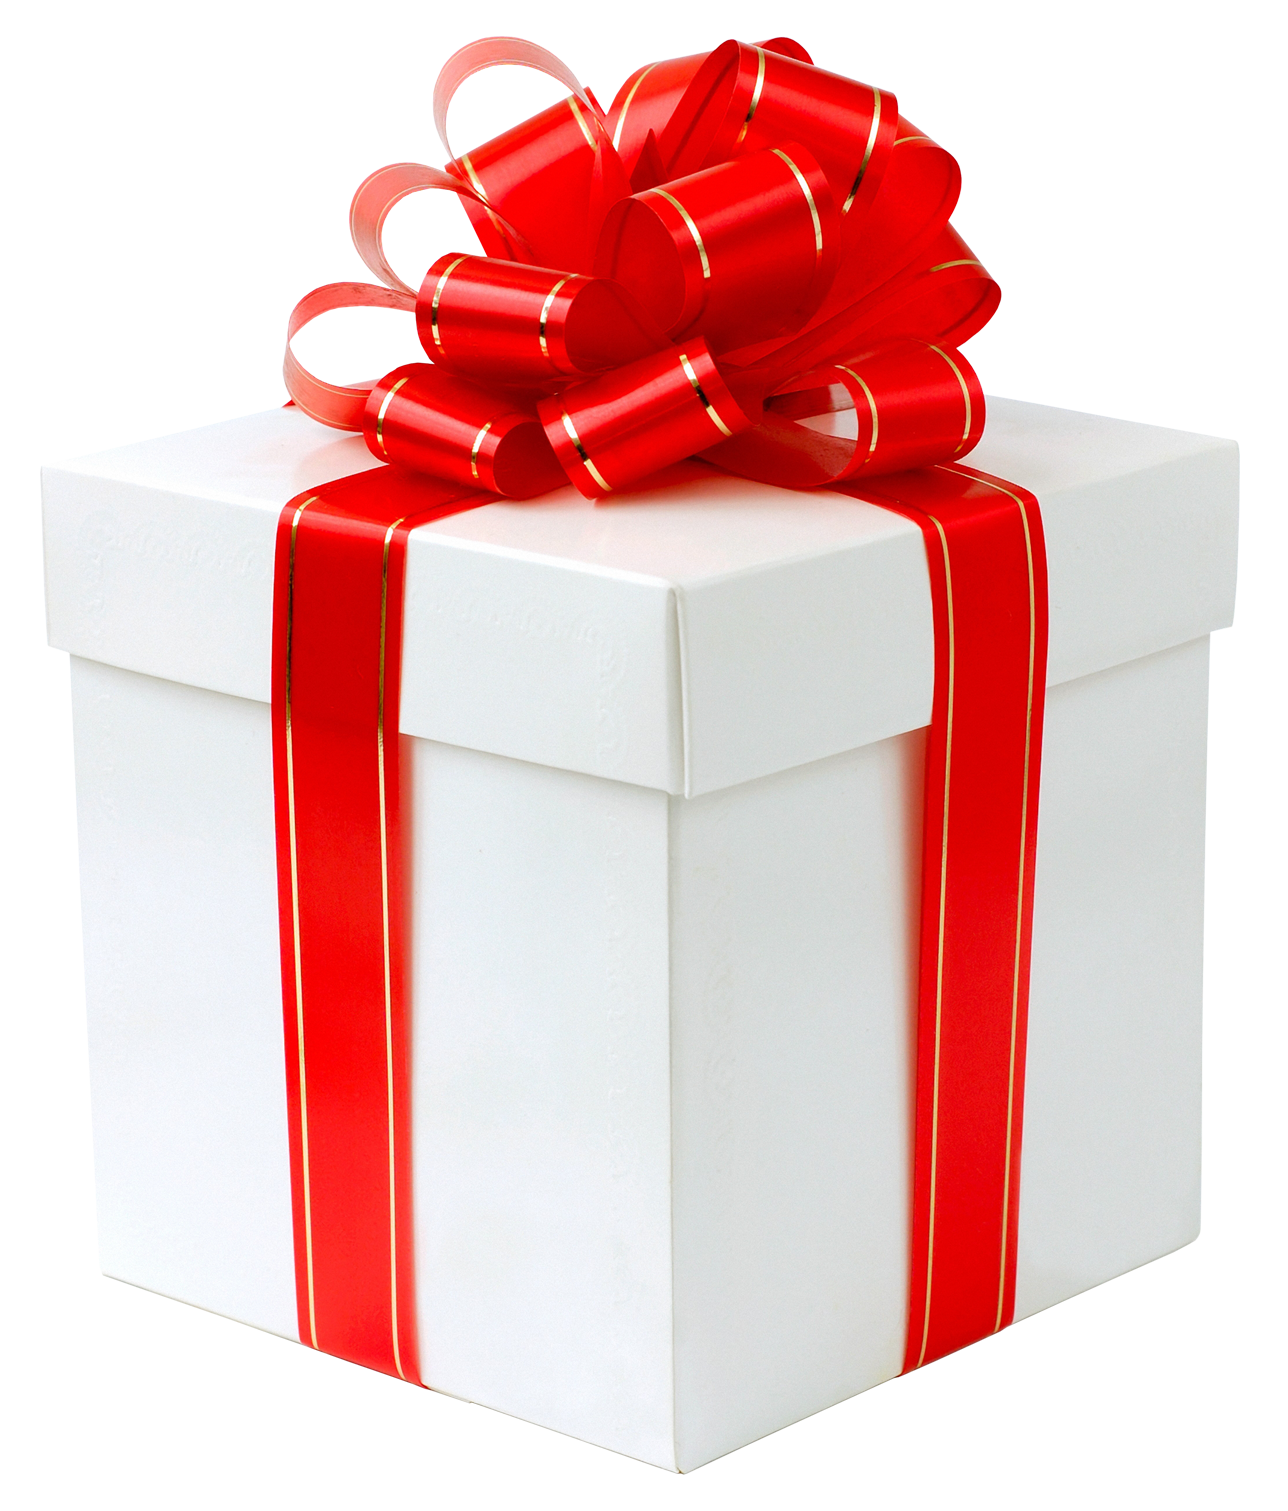 Gift Package Png - White Gift Box with Red Bow PNG Clipart   Gallery Yopriceville ...